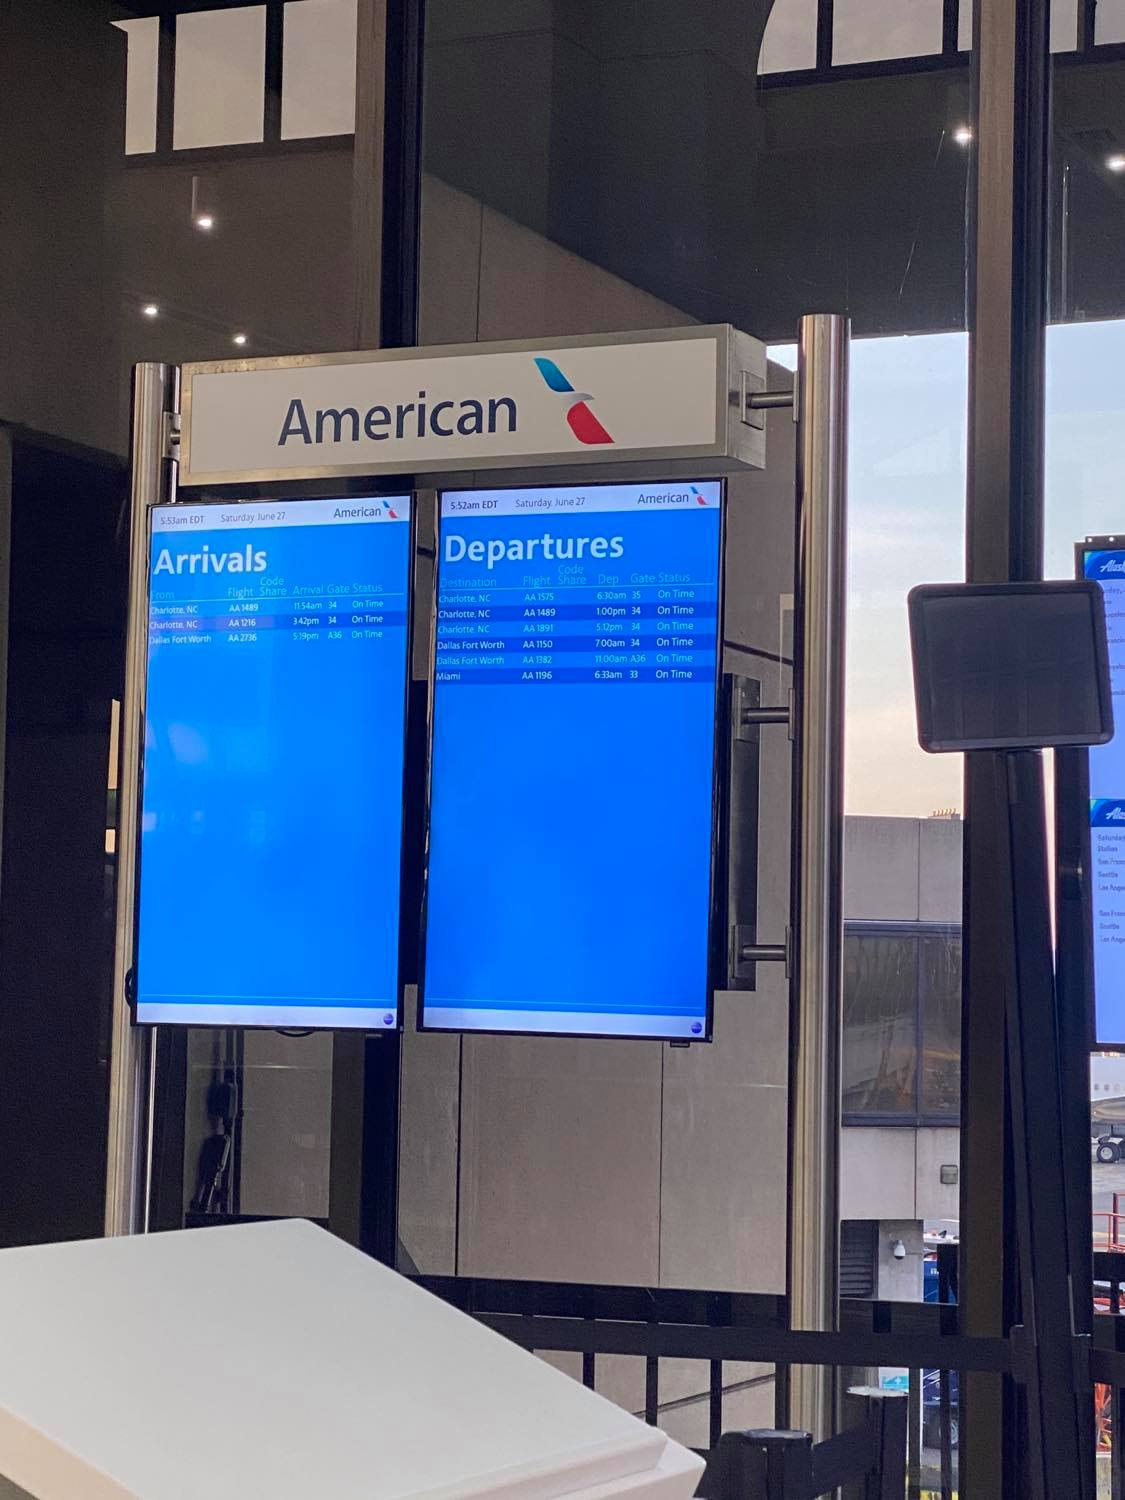 Flying American Airlines Covid-19 June 2020